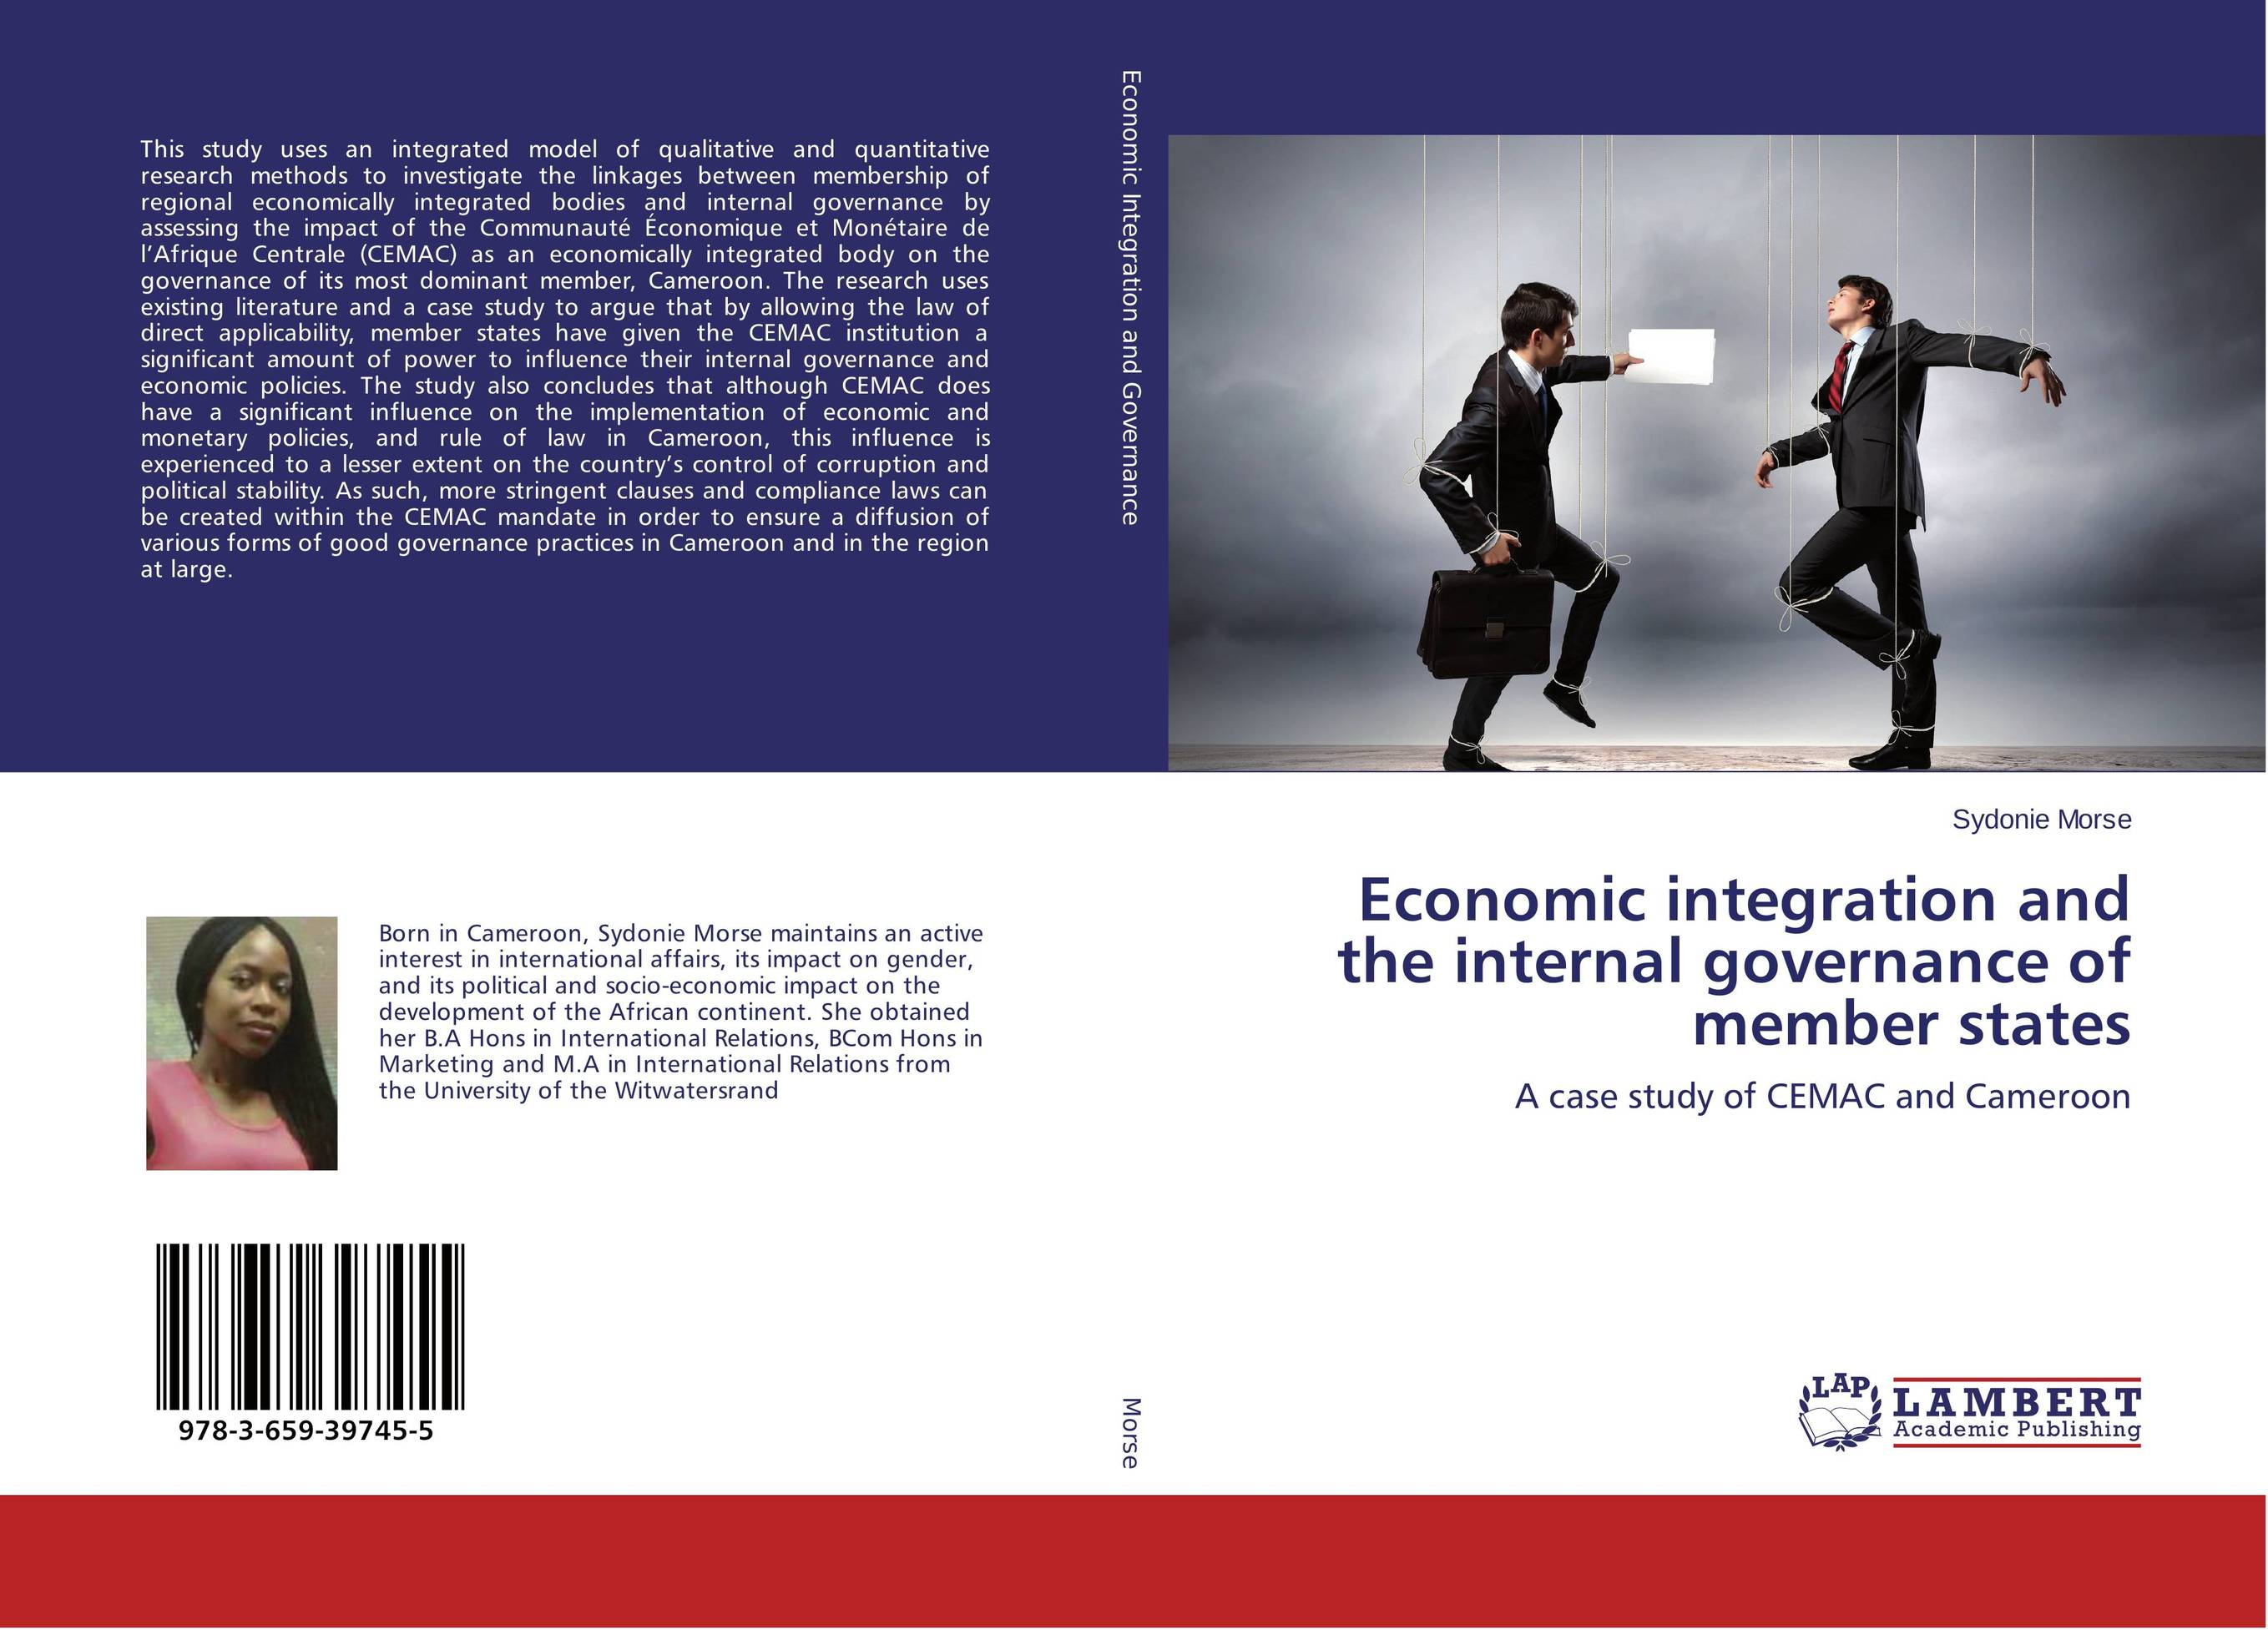 Economic integration and the internal governance of member states evaluation of the internal control practices